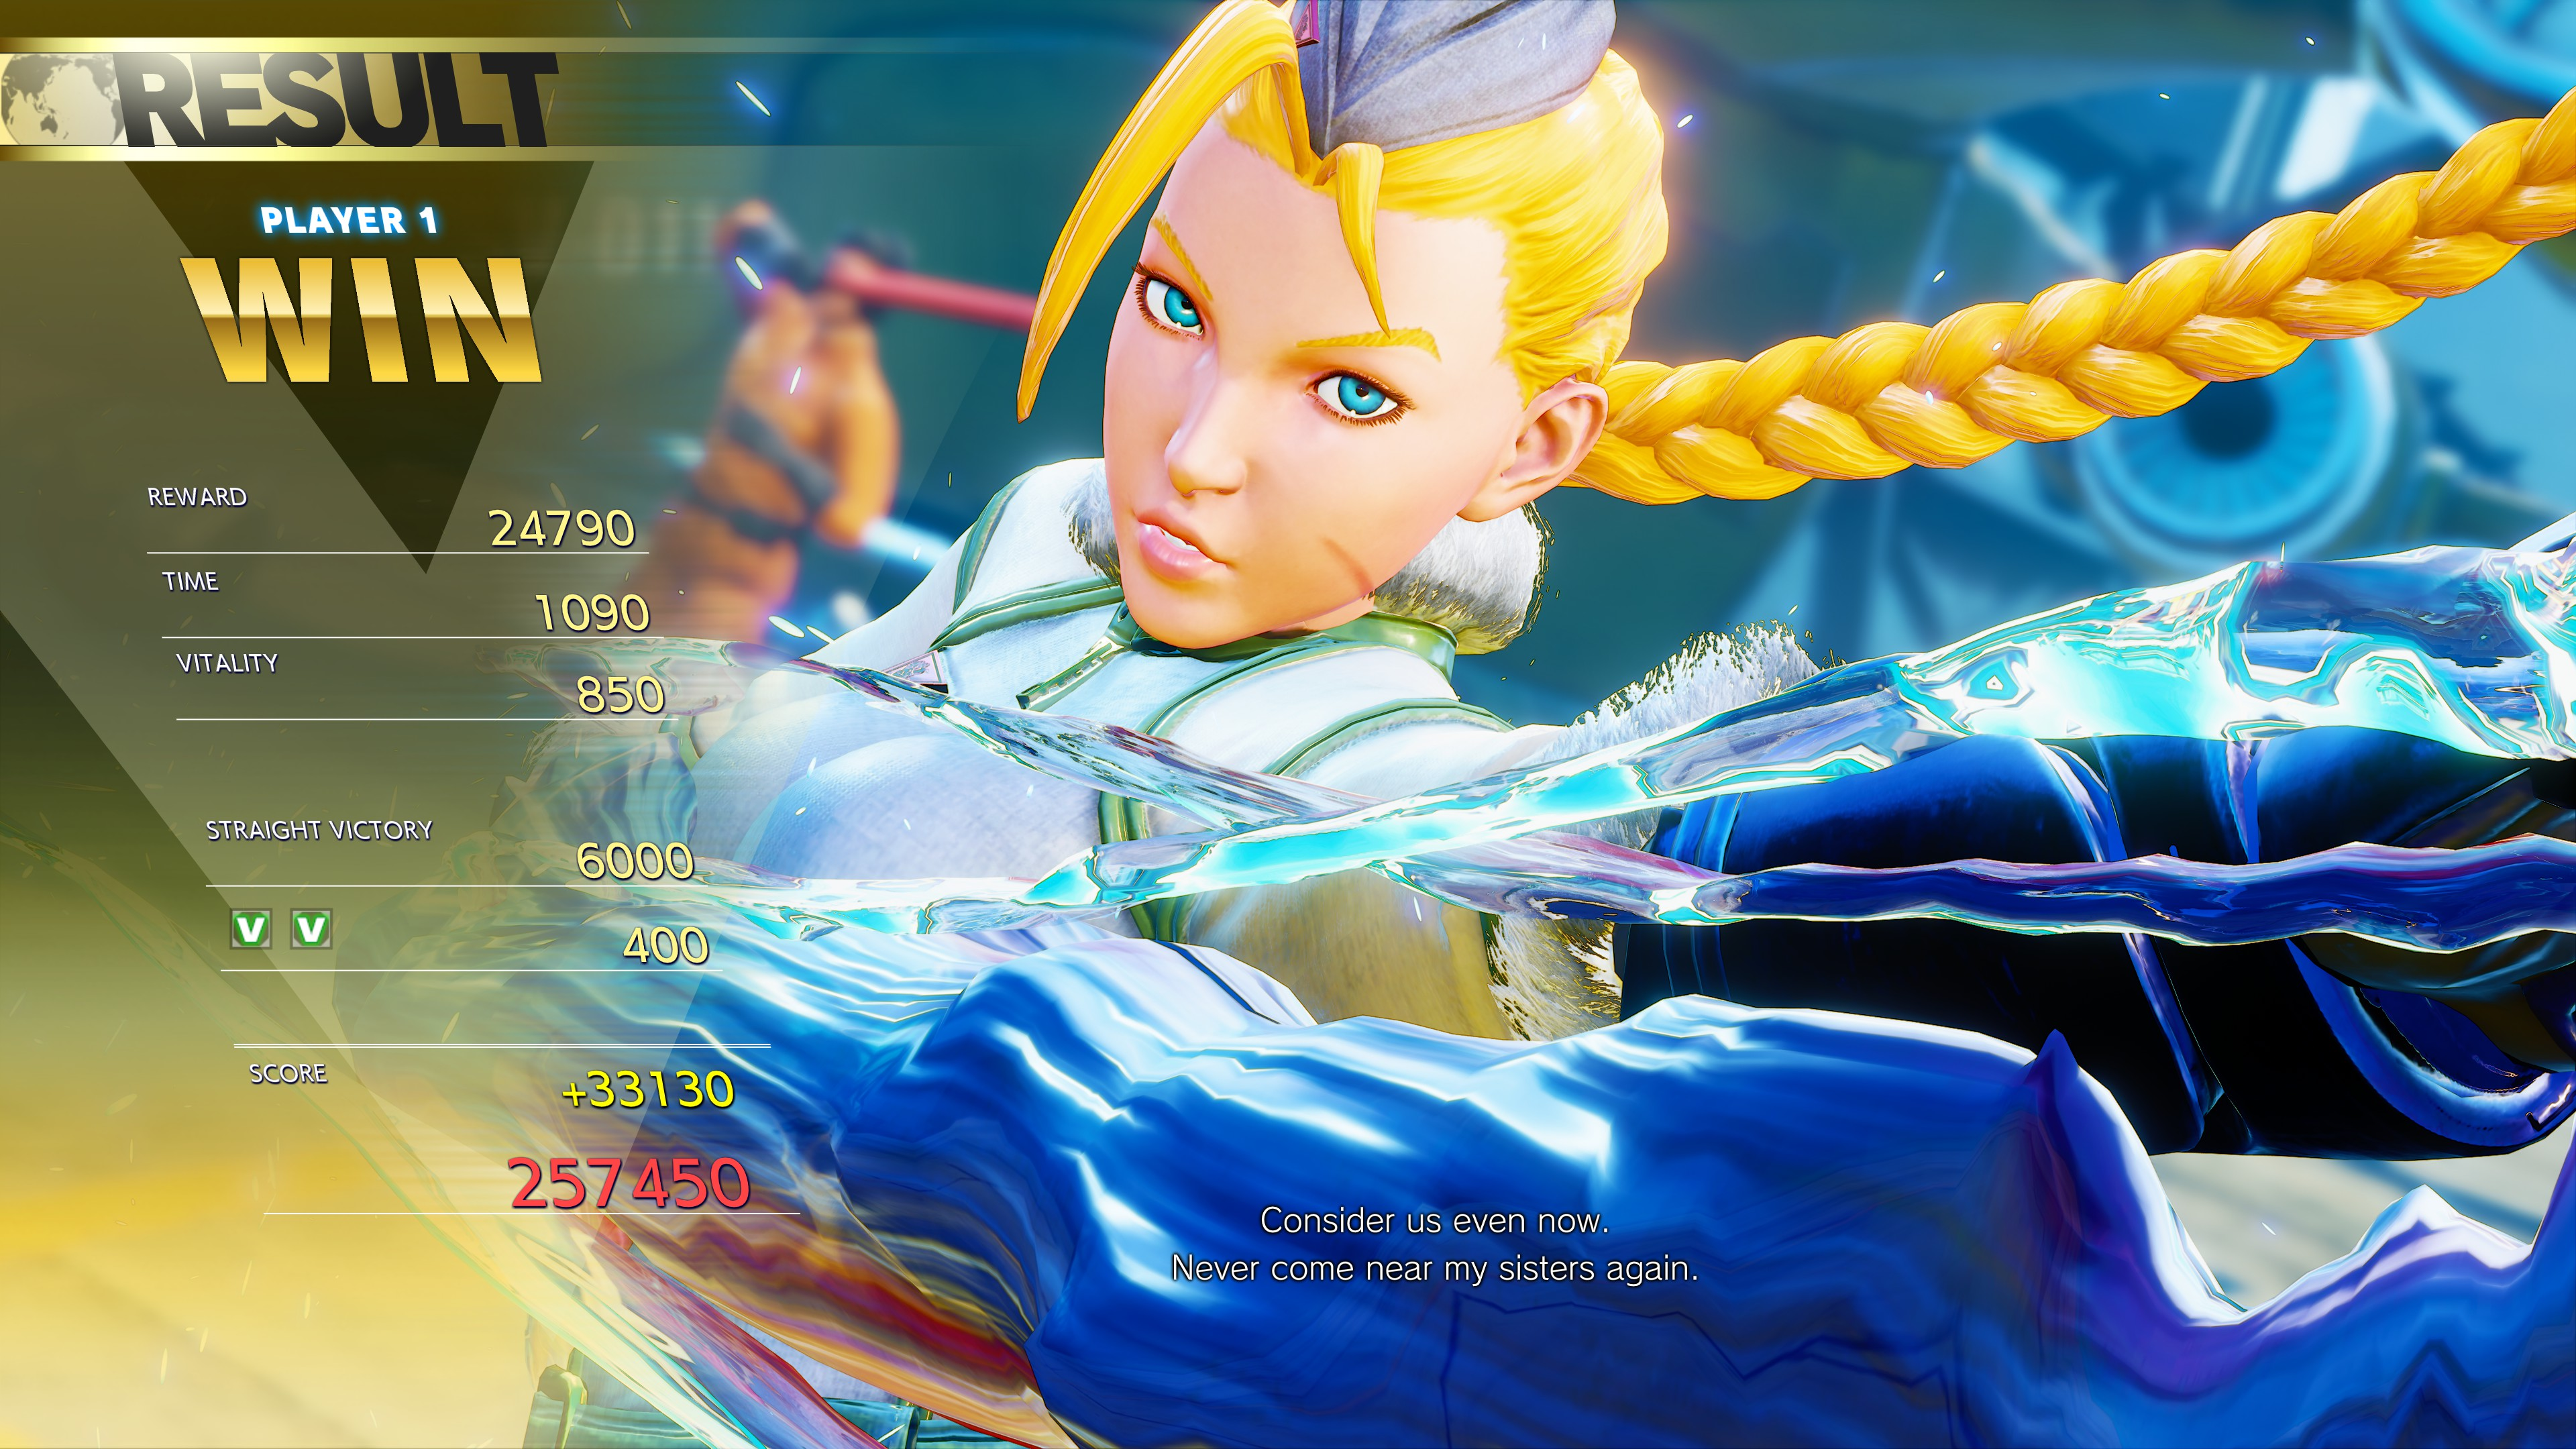 Street Fighter 5 Missions Guide How To Complete Every Weekly